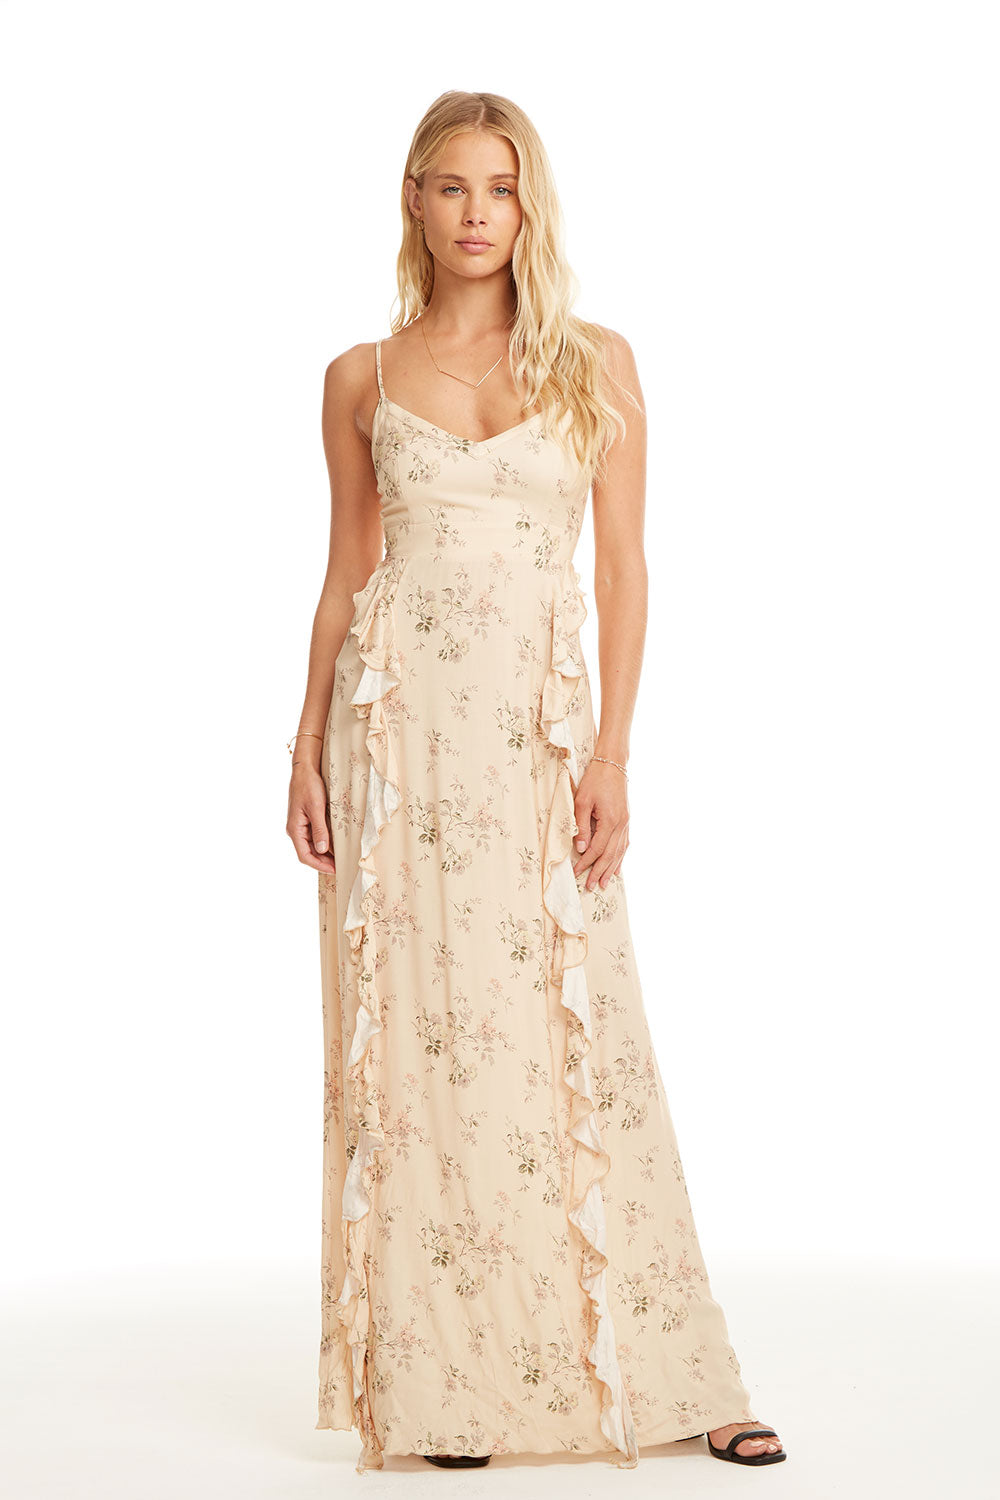 Heirloom Wovens Lace-Up Back Ruffle Maxi Dress WOMENS chaserbrand4.myshopify.com